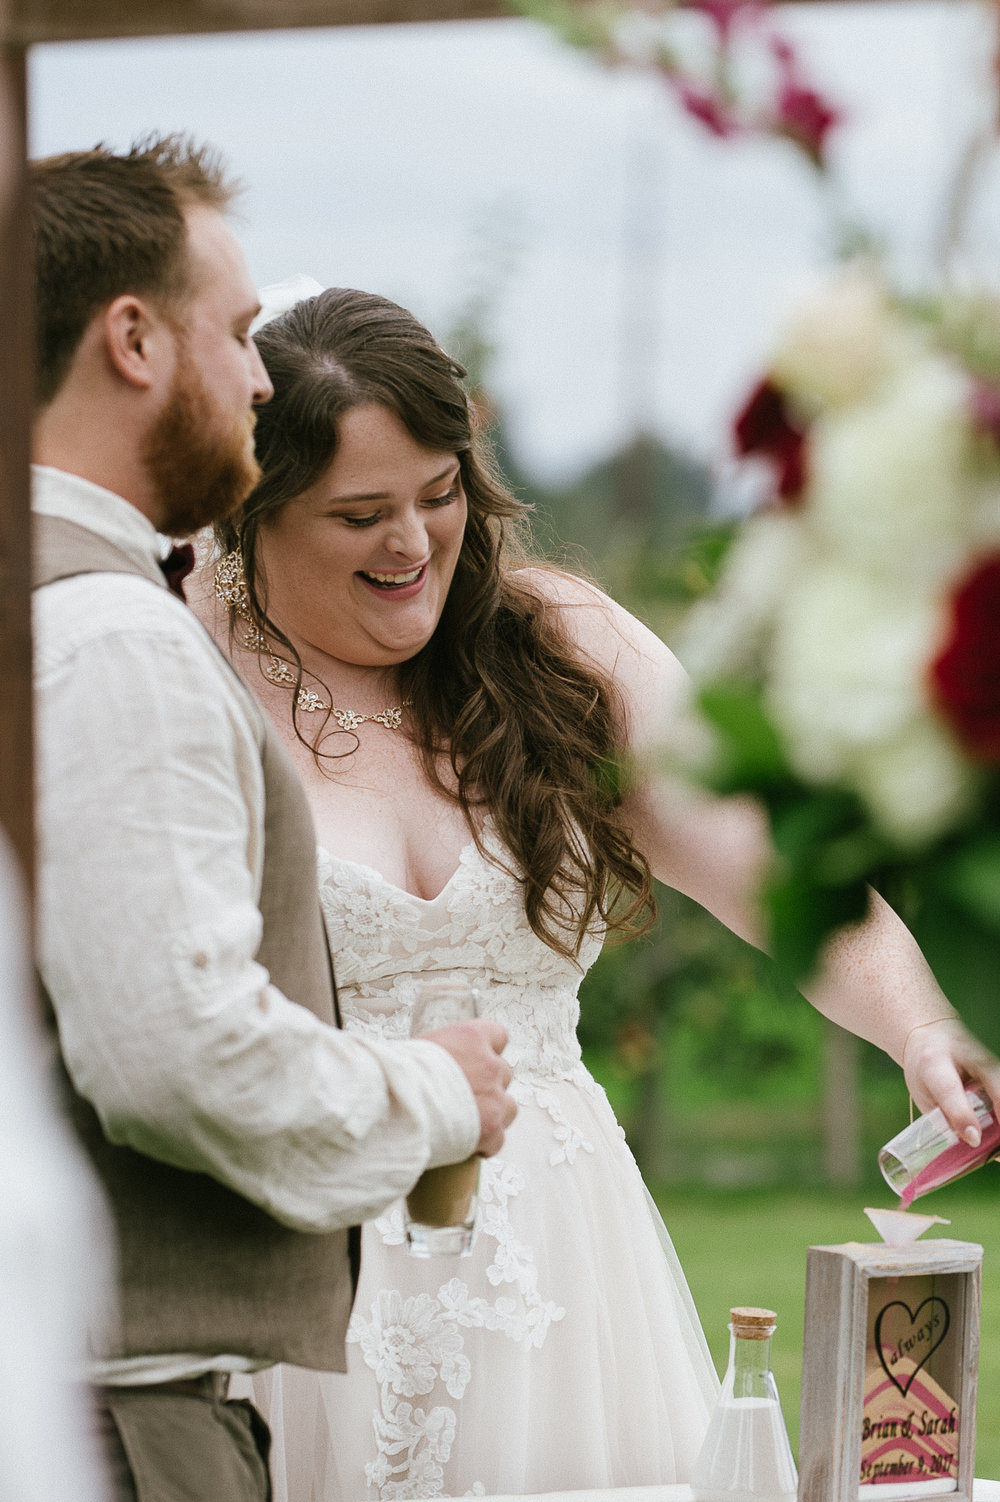 Swan Trail Farm Wedding_Sarah Schurman + Brian Skadan_Snohomish Wedding_Kelsey Lane Photography-6132.jpg